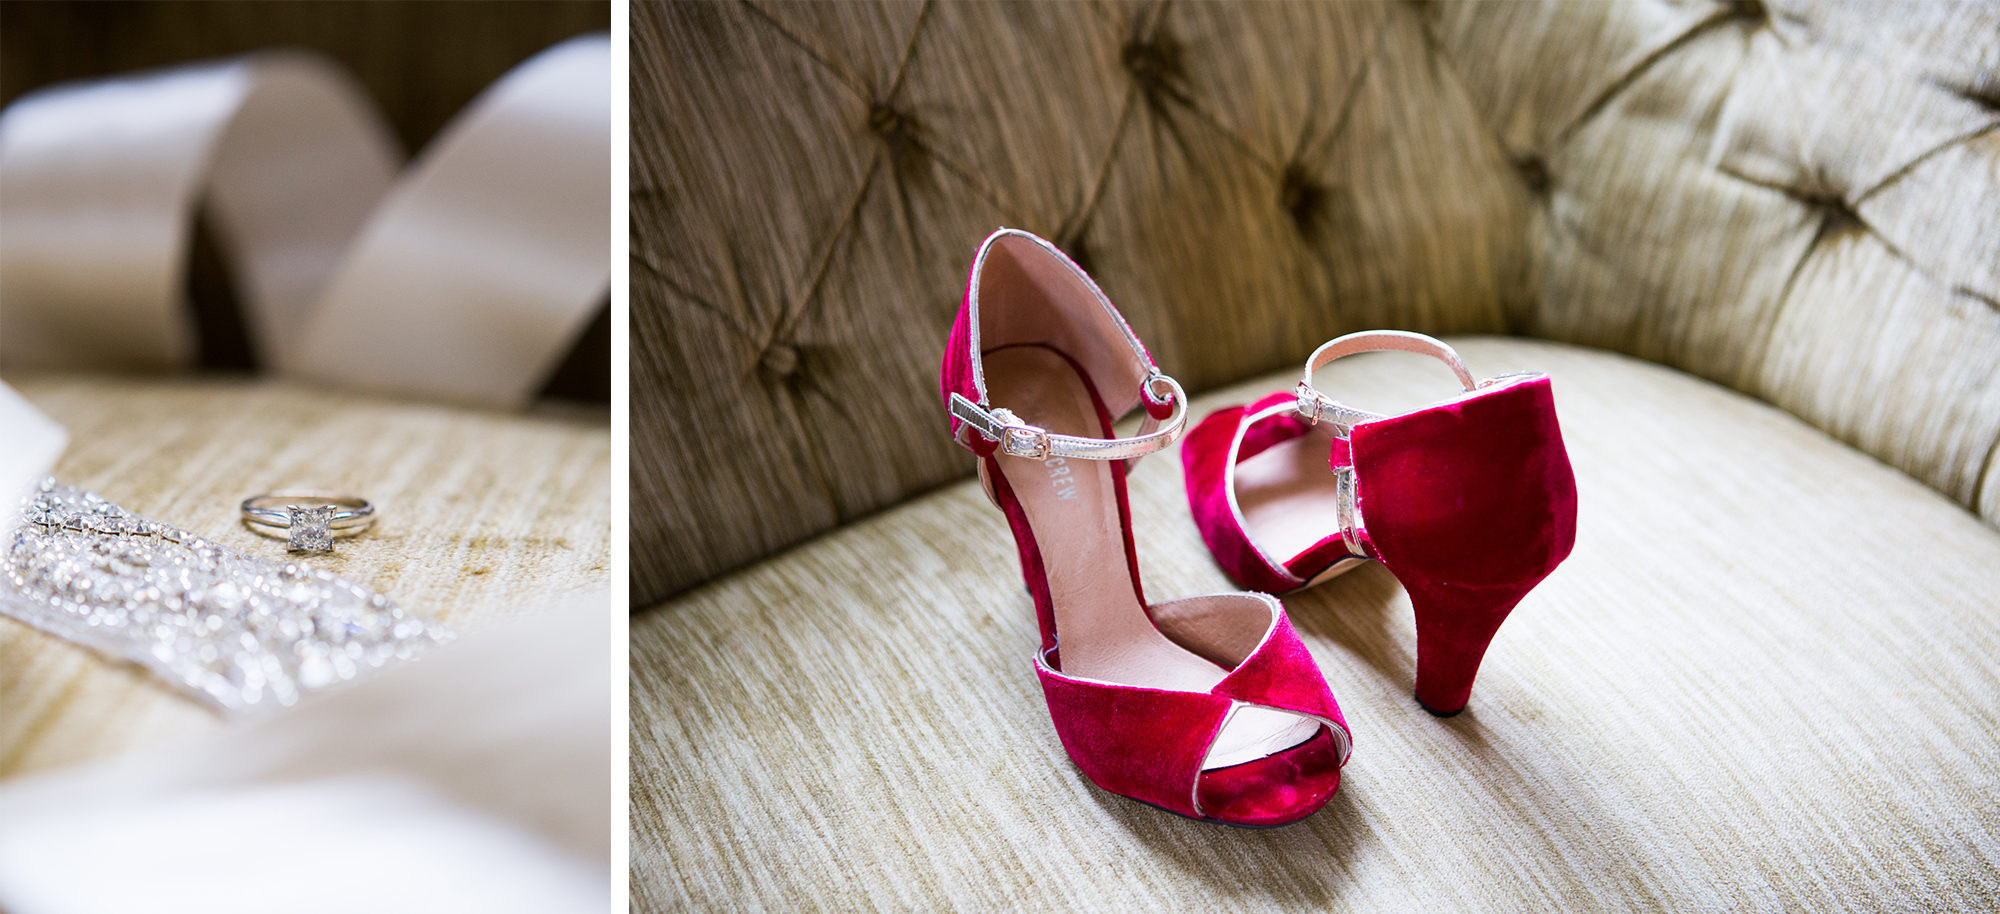 Bride Details Red Velvet Shoes Engagement Ring Wedding Massachusetts Zsuzsi Pal Photography Destination